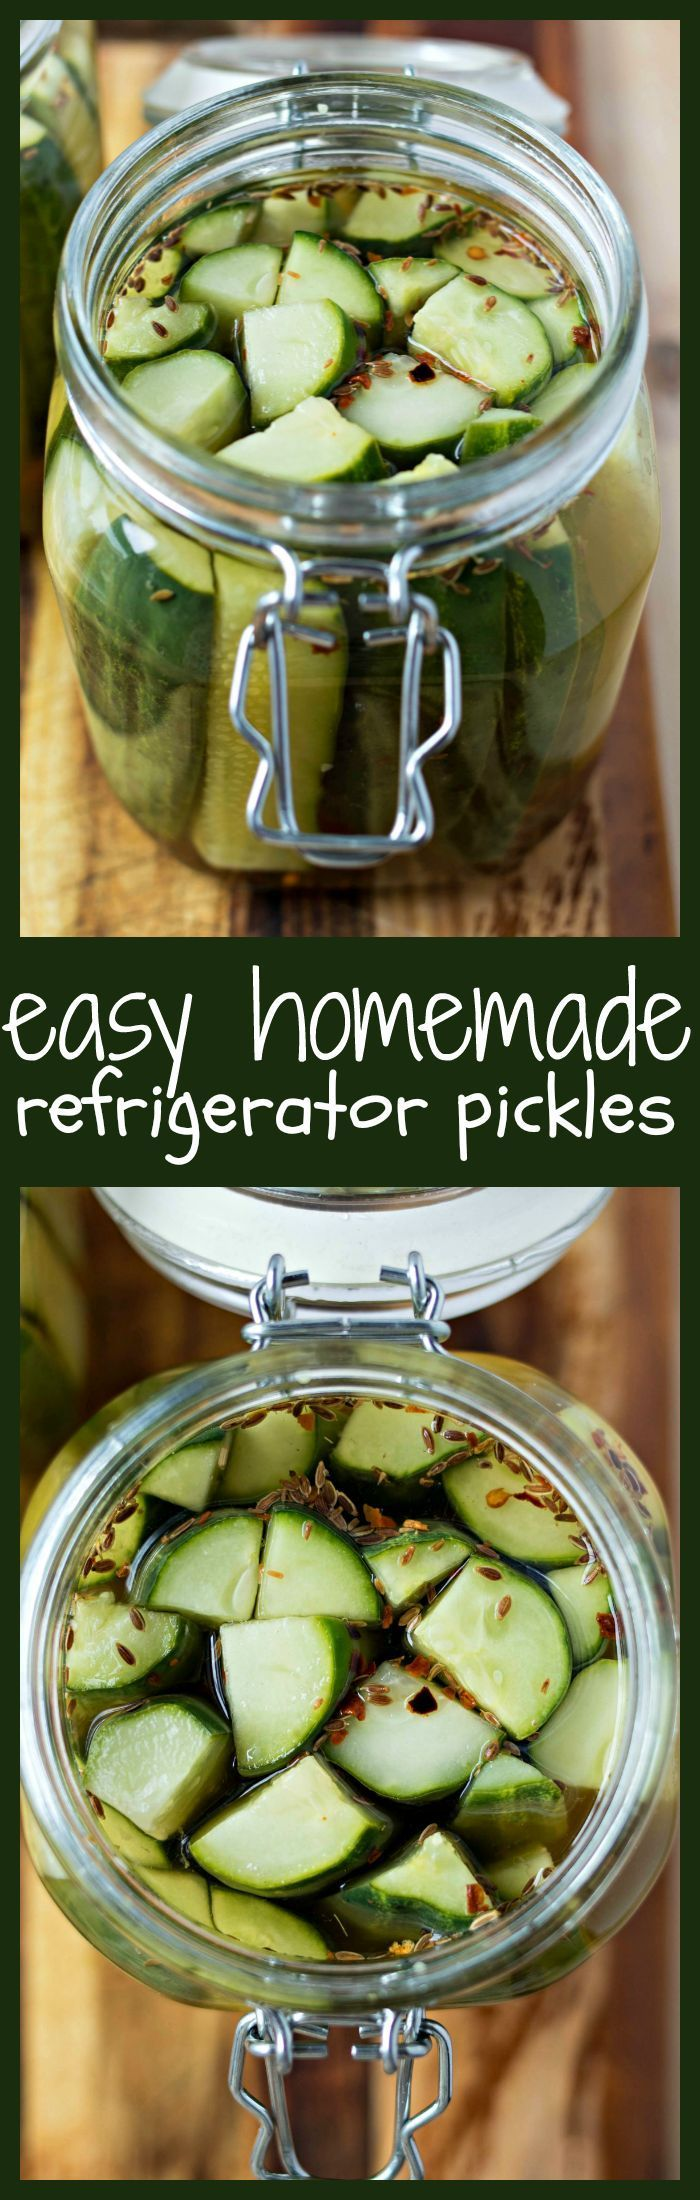 Easy Homemade Refrigerator Pickles - A super-easy recipe for homemade pickles that cure right in your fridge so there's no need to preserve them in jars. Ready in just a day or two, these classic dill